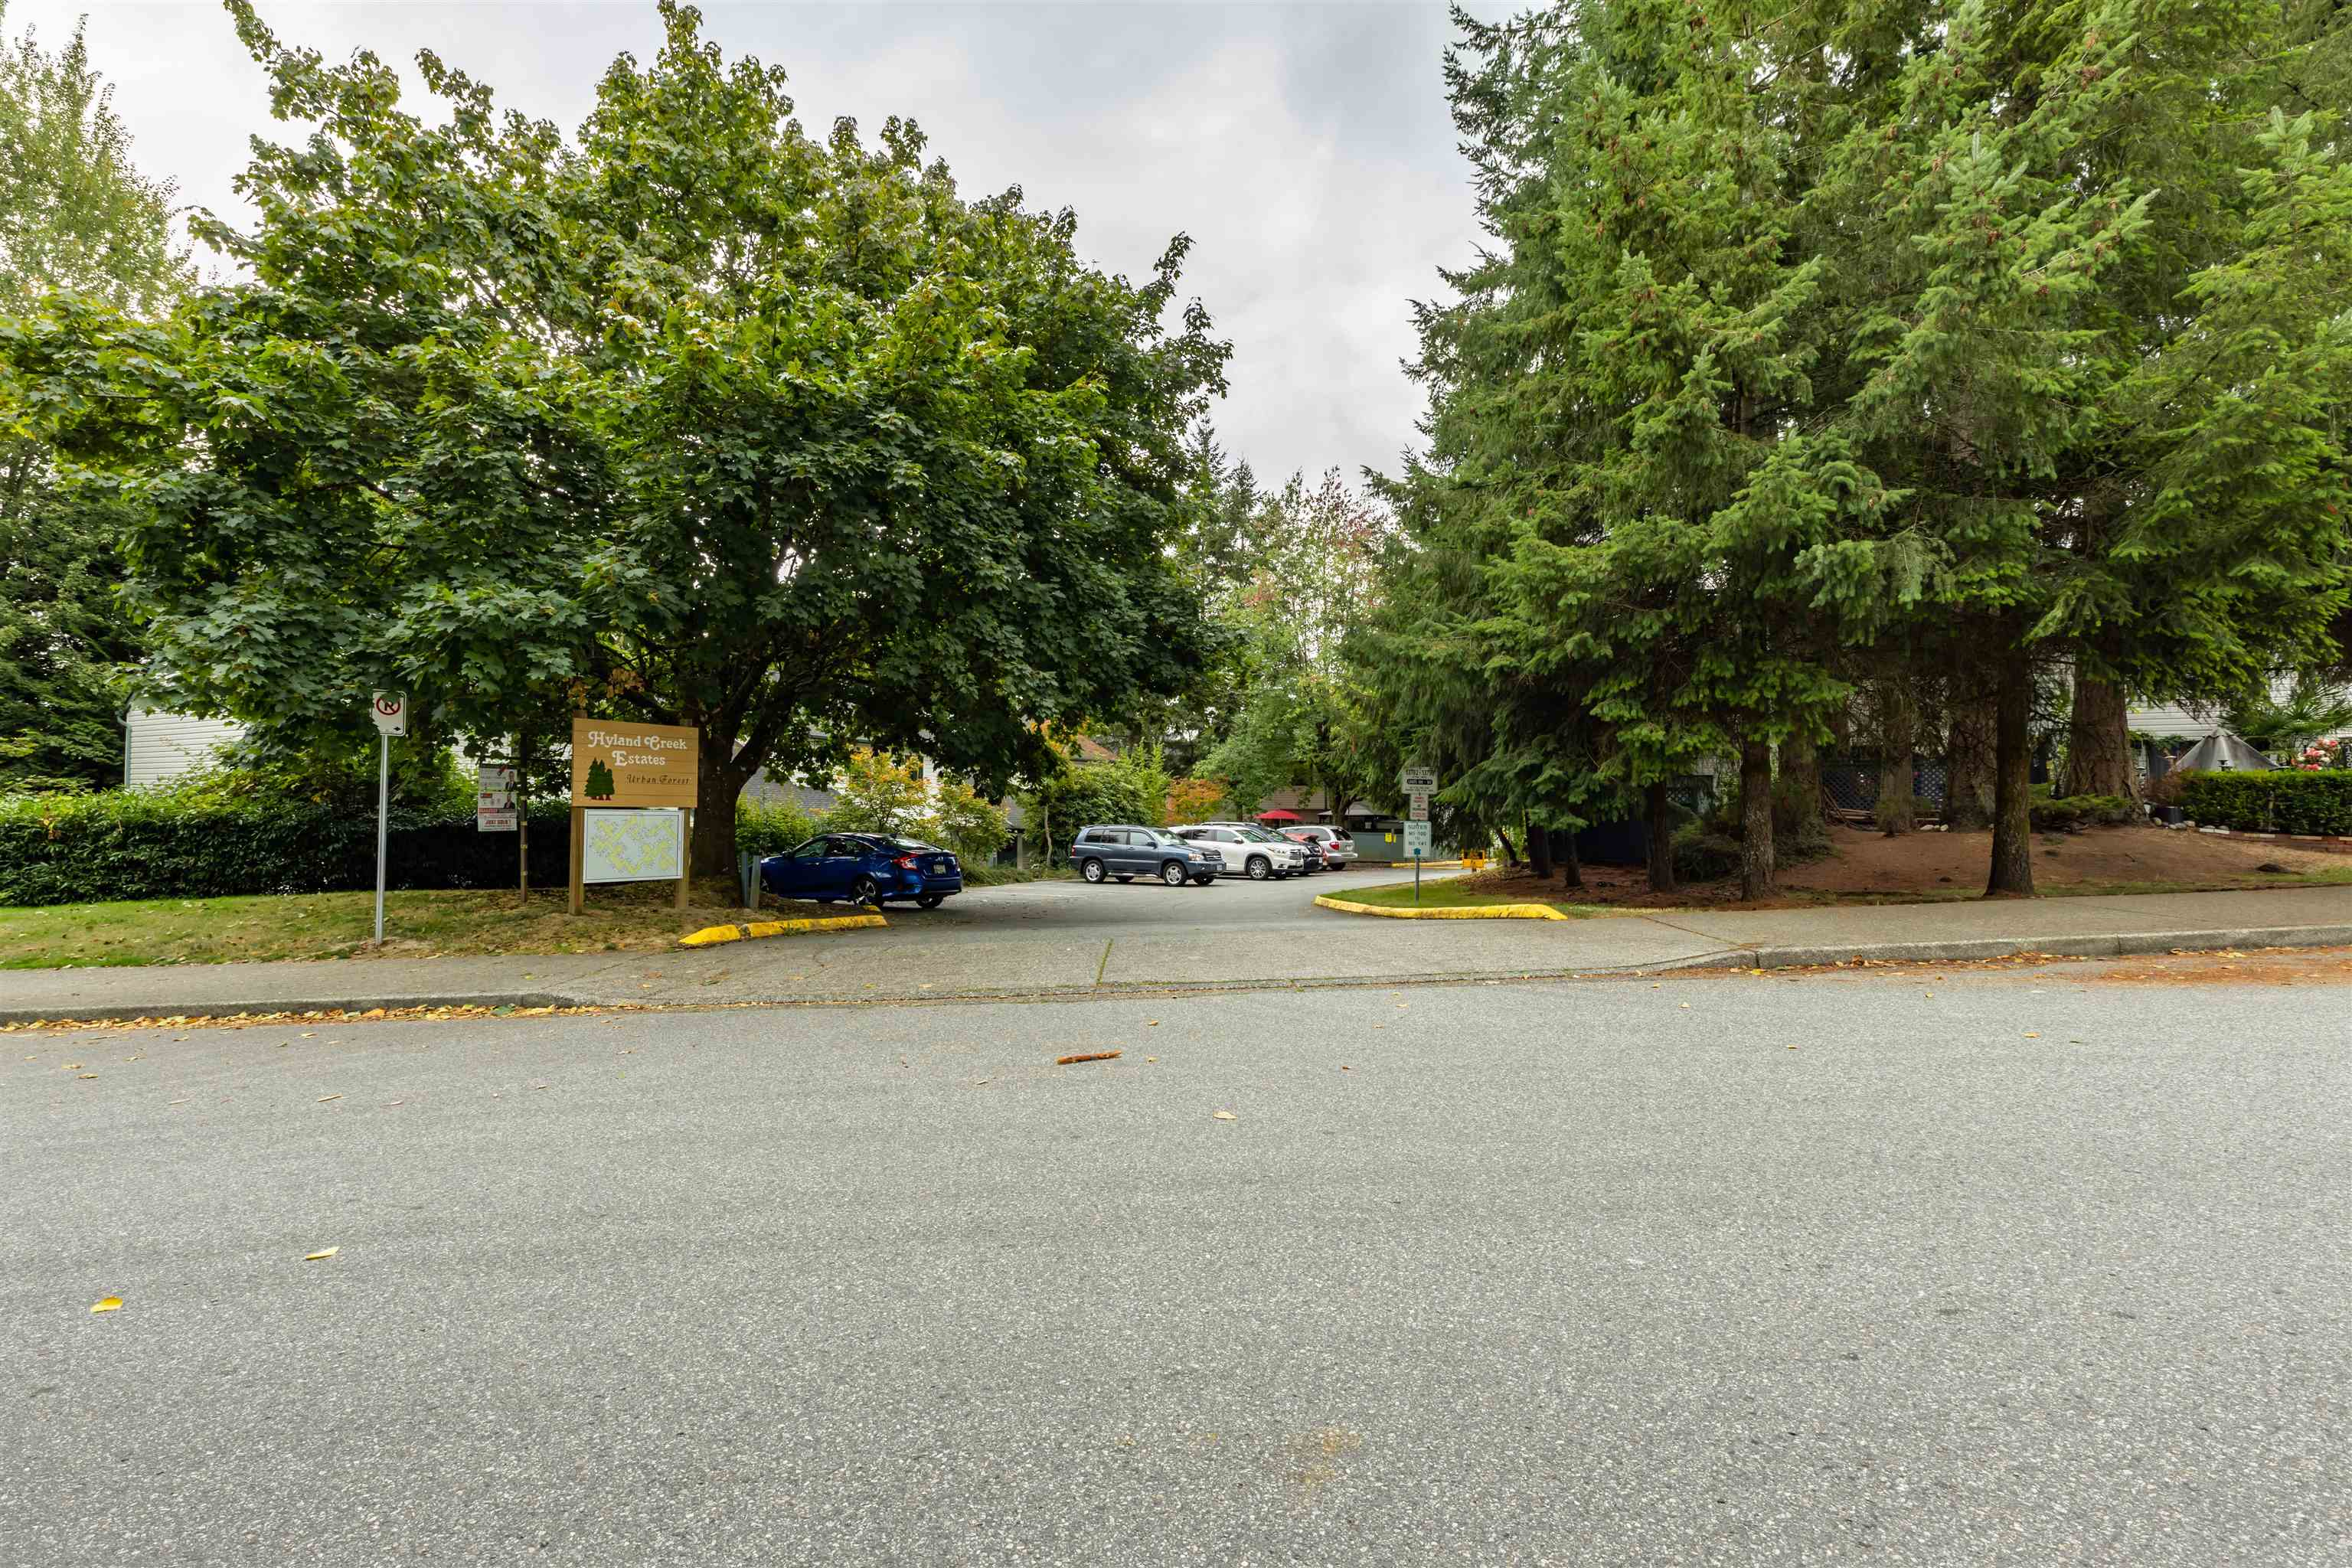 107 13726 67 AVENUE - East Newton Townhouse for sale, 3 Bedrooms (R2616694) - #25